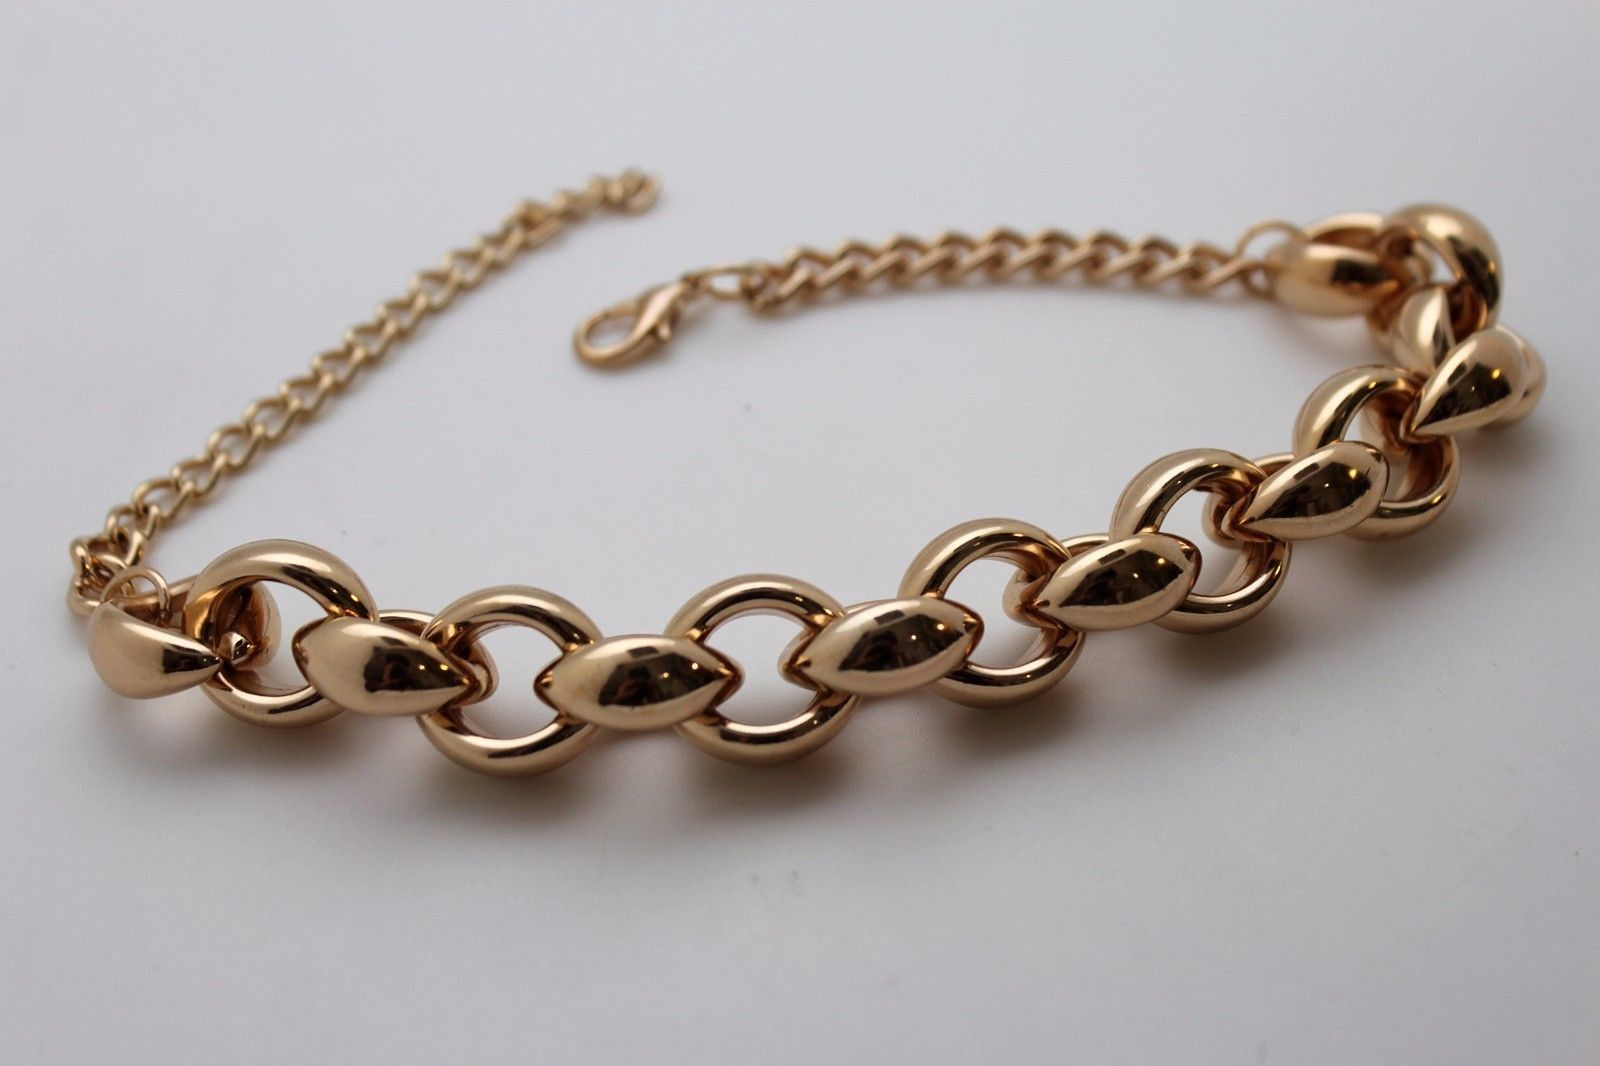 Gold metal chains big thick links anklet shoe charm boot bracelet